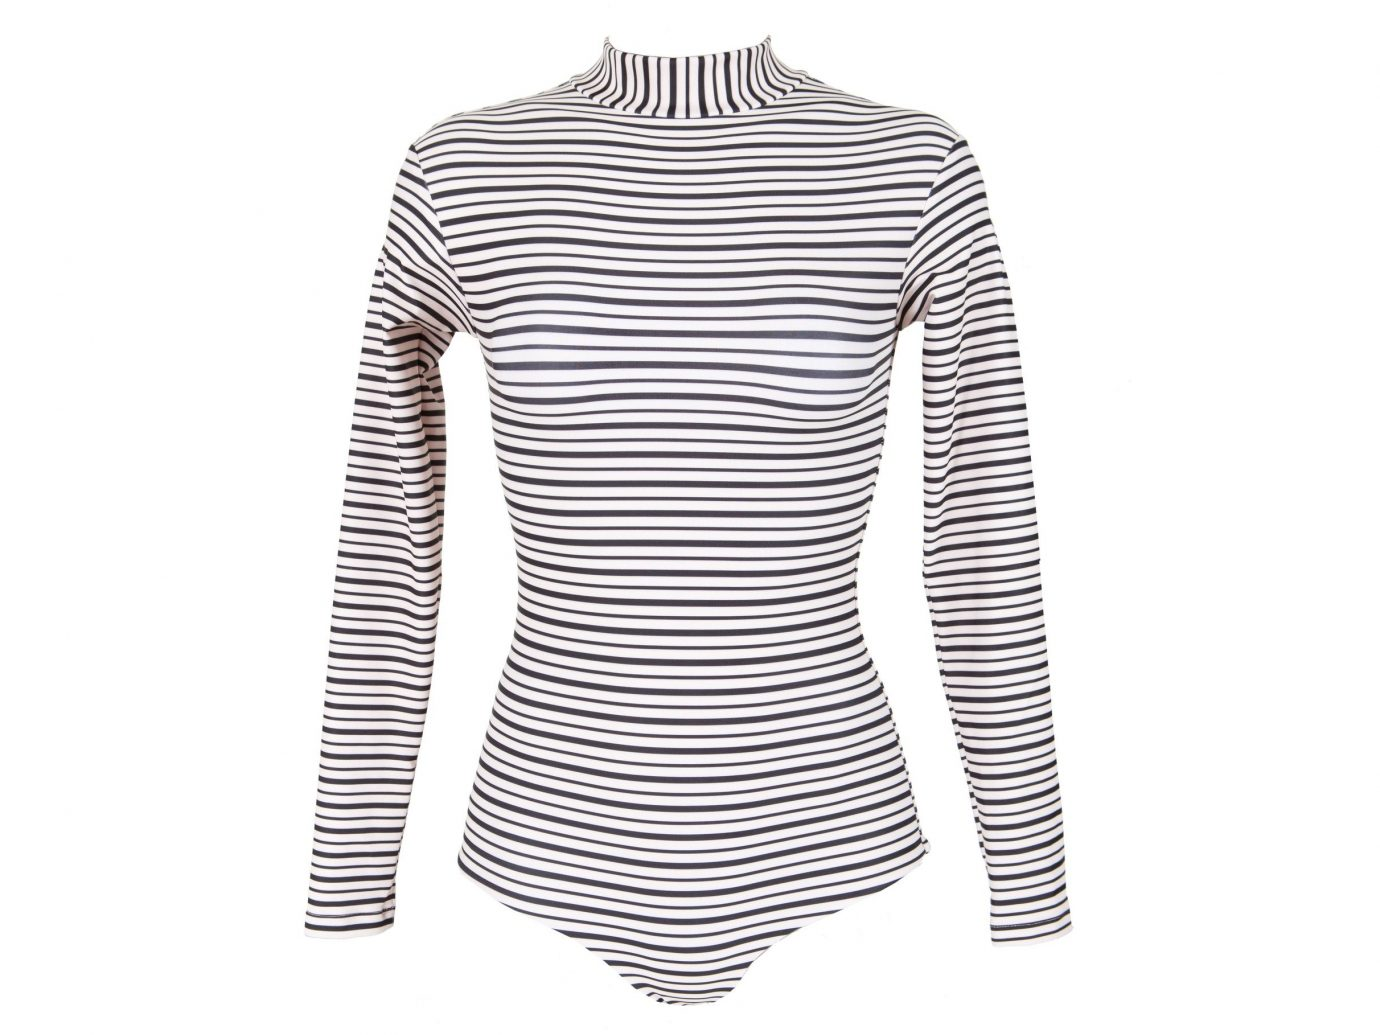 Style + Design clothing day dress sleeve outerwear t shirt neck dress pattern sweater collar